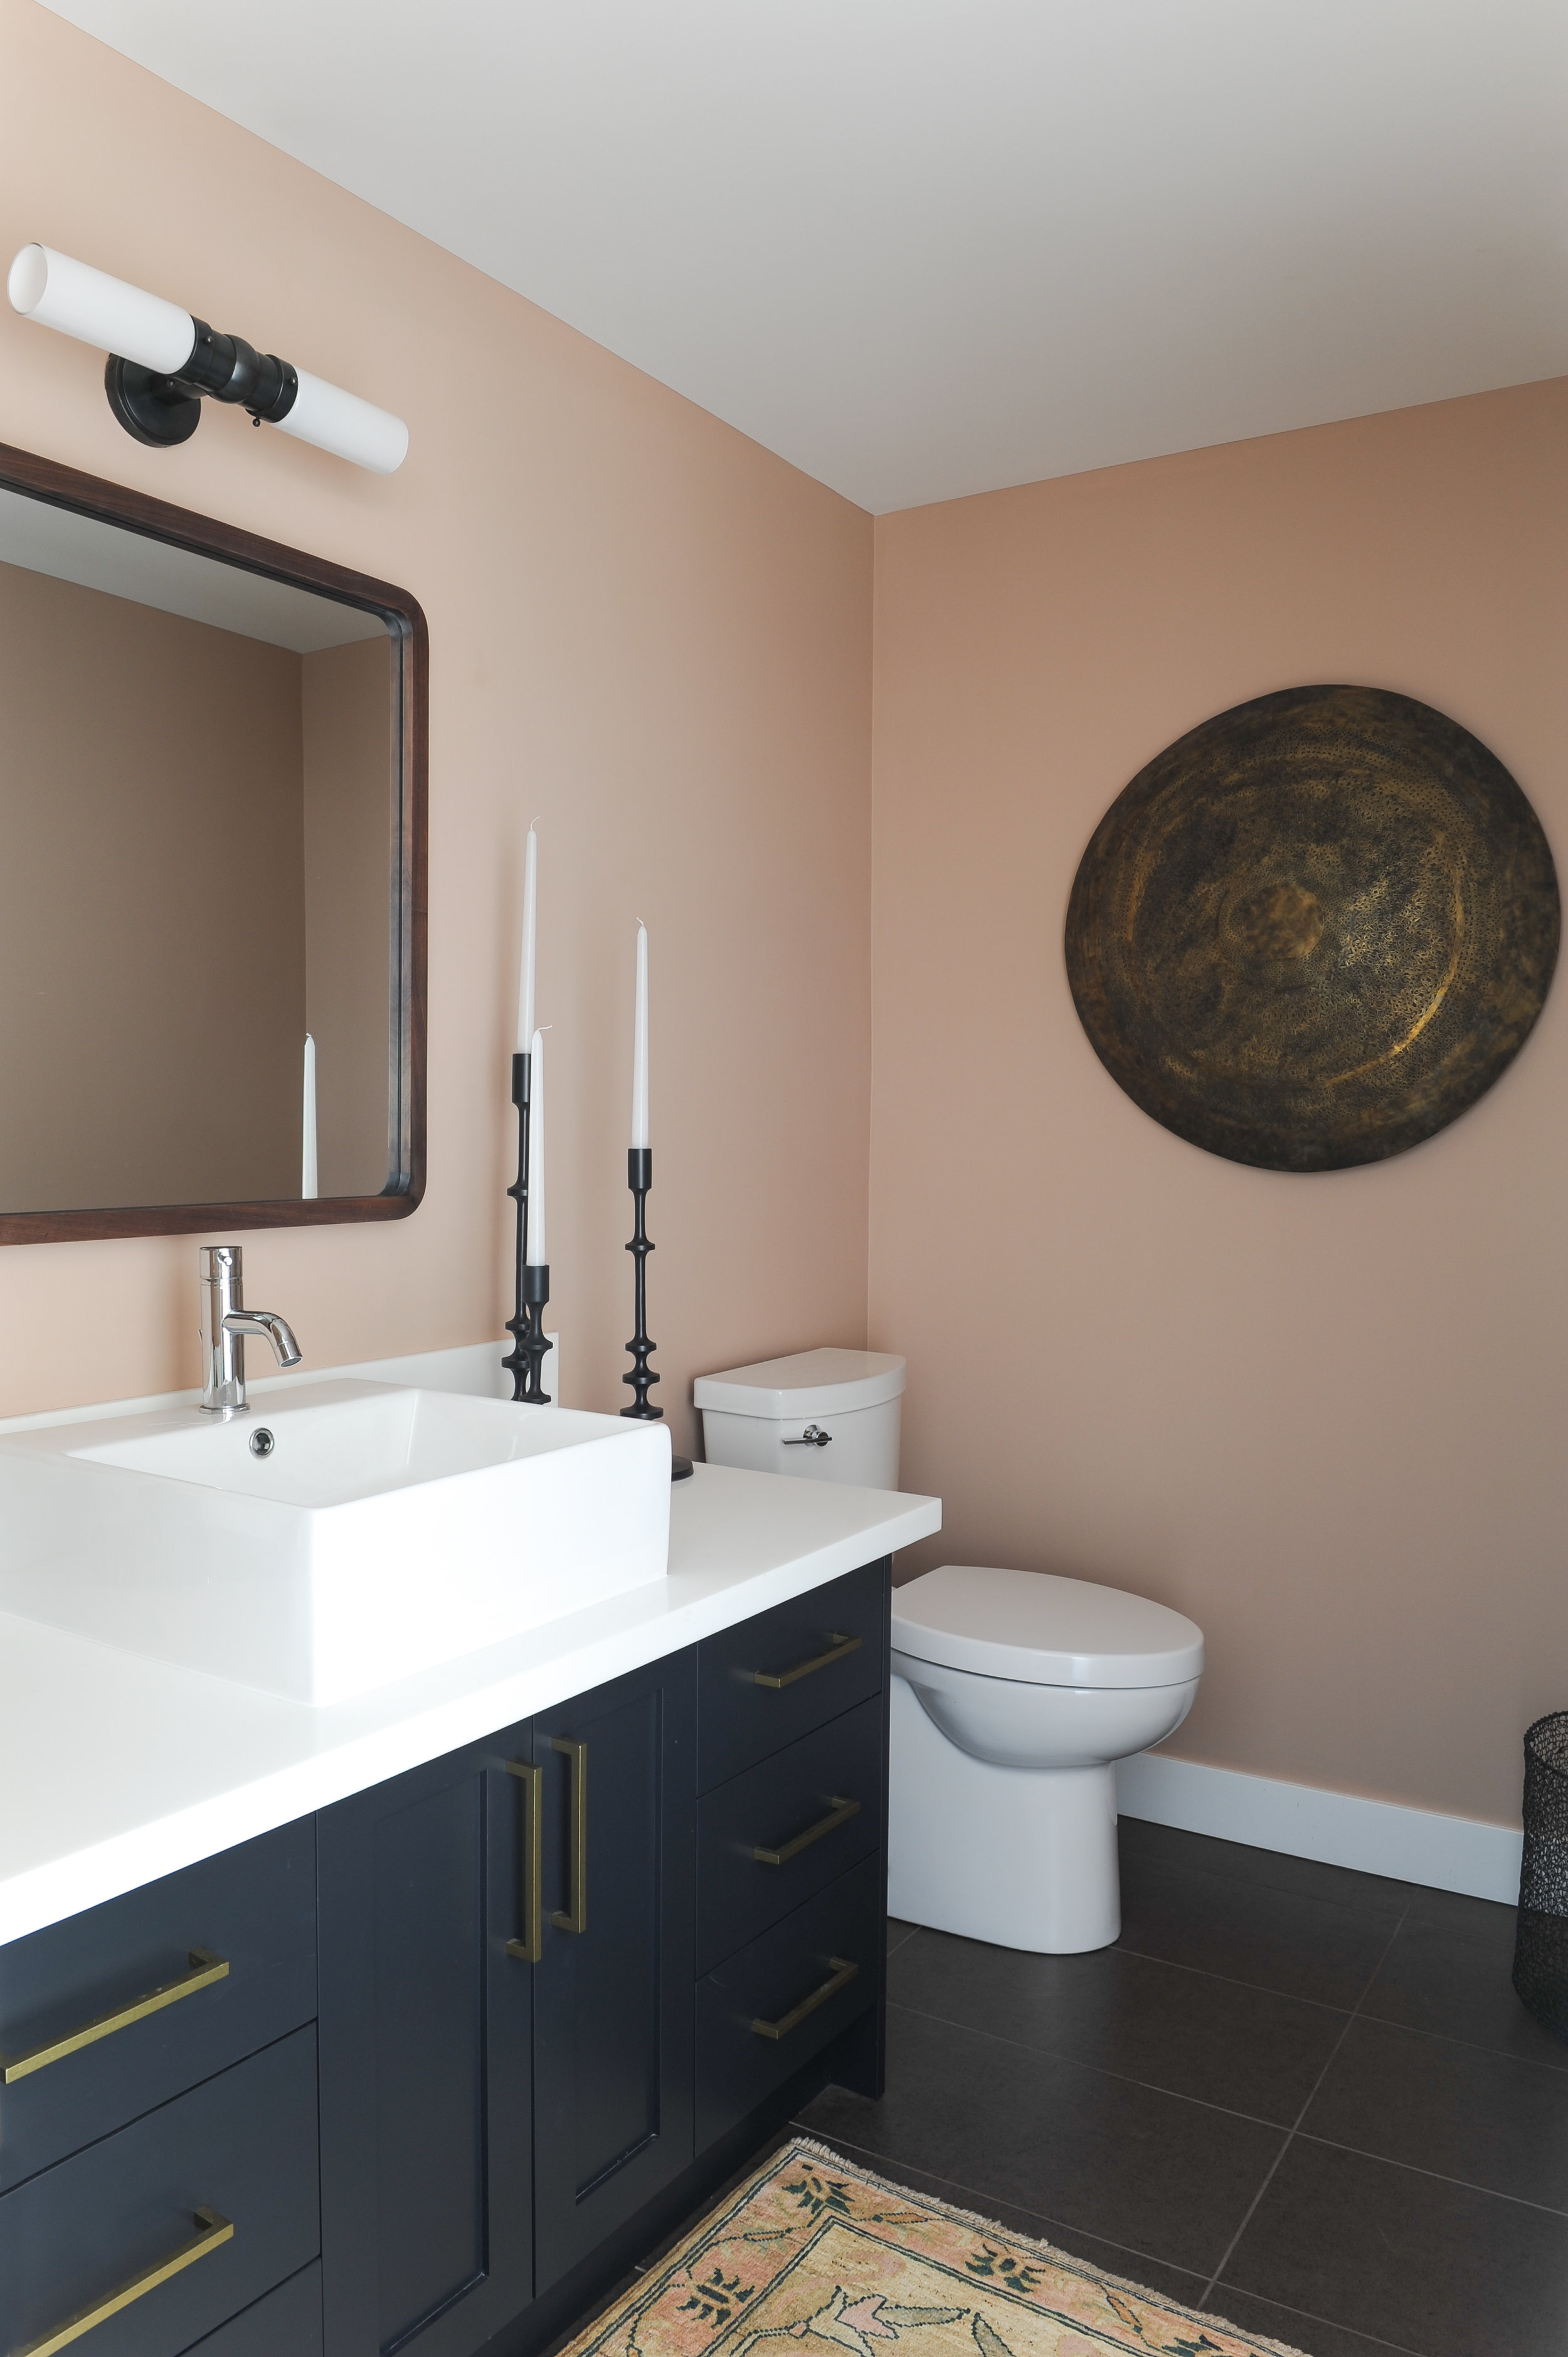 A pink walled bathroom is balanced by the black counters and large decorative metal shield that hangs on the wall above the toilet.